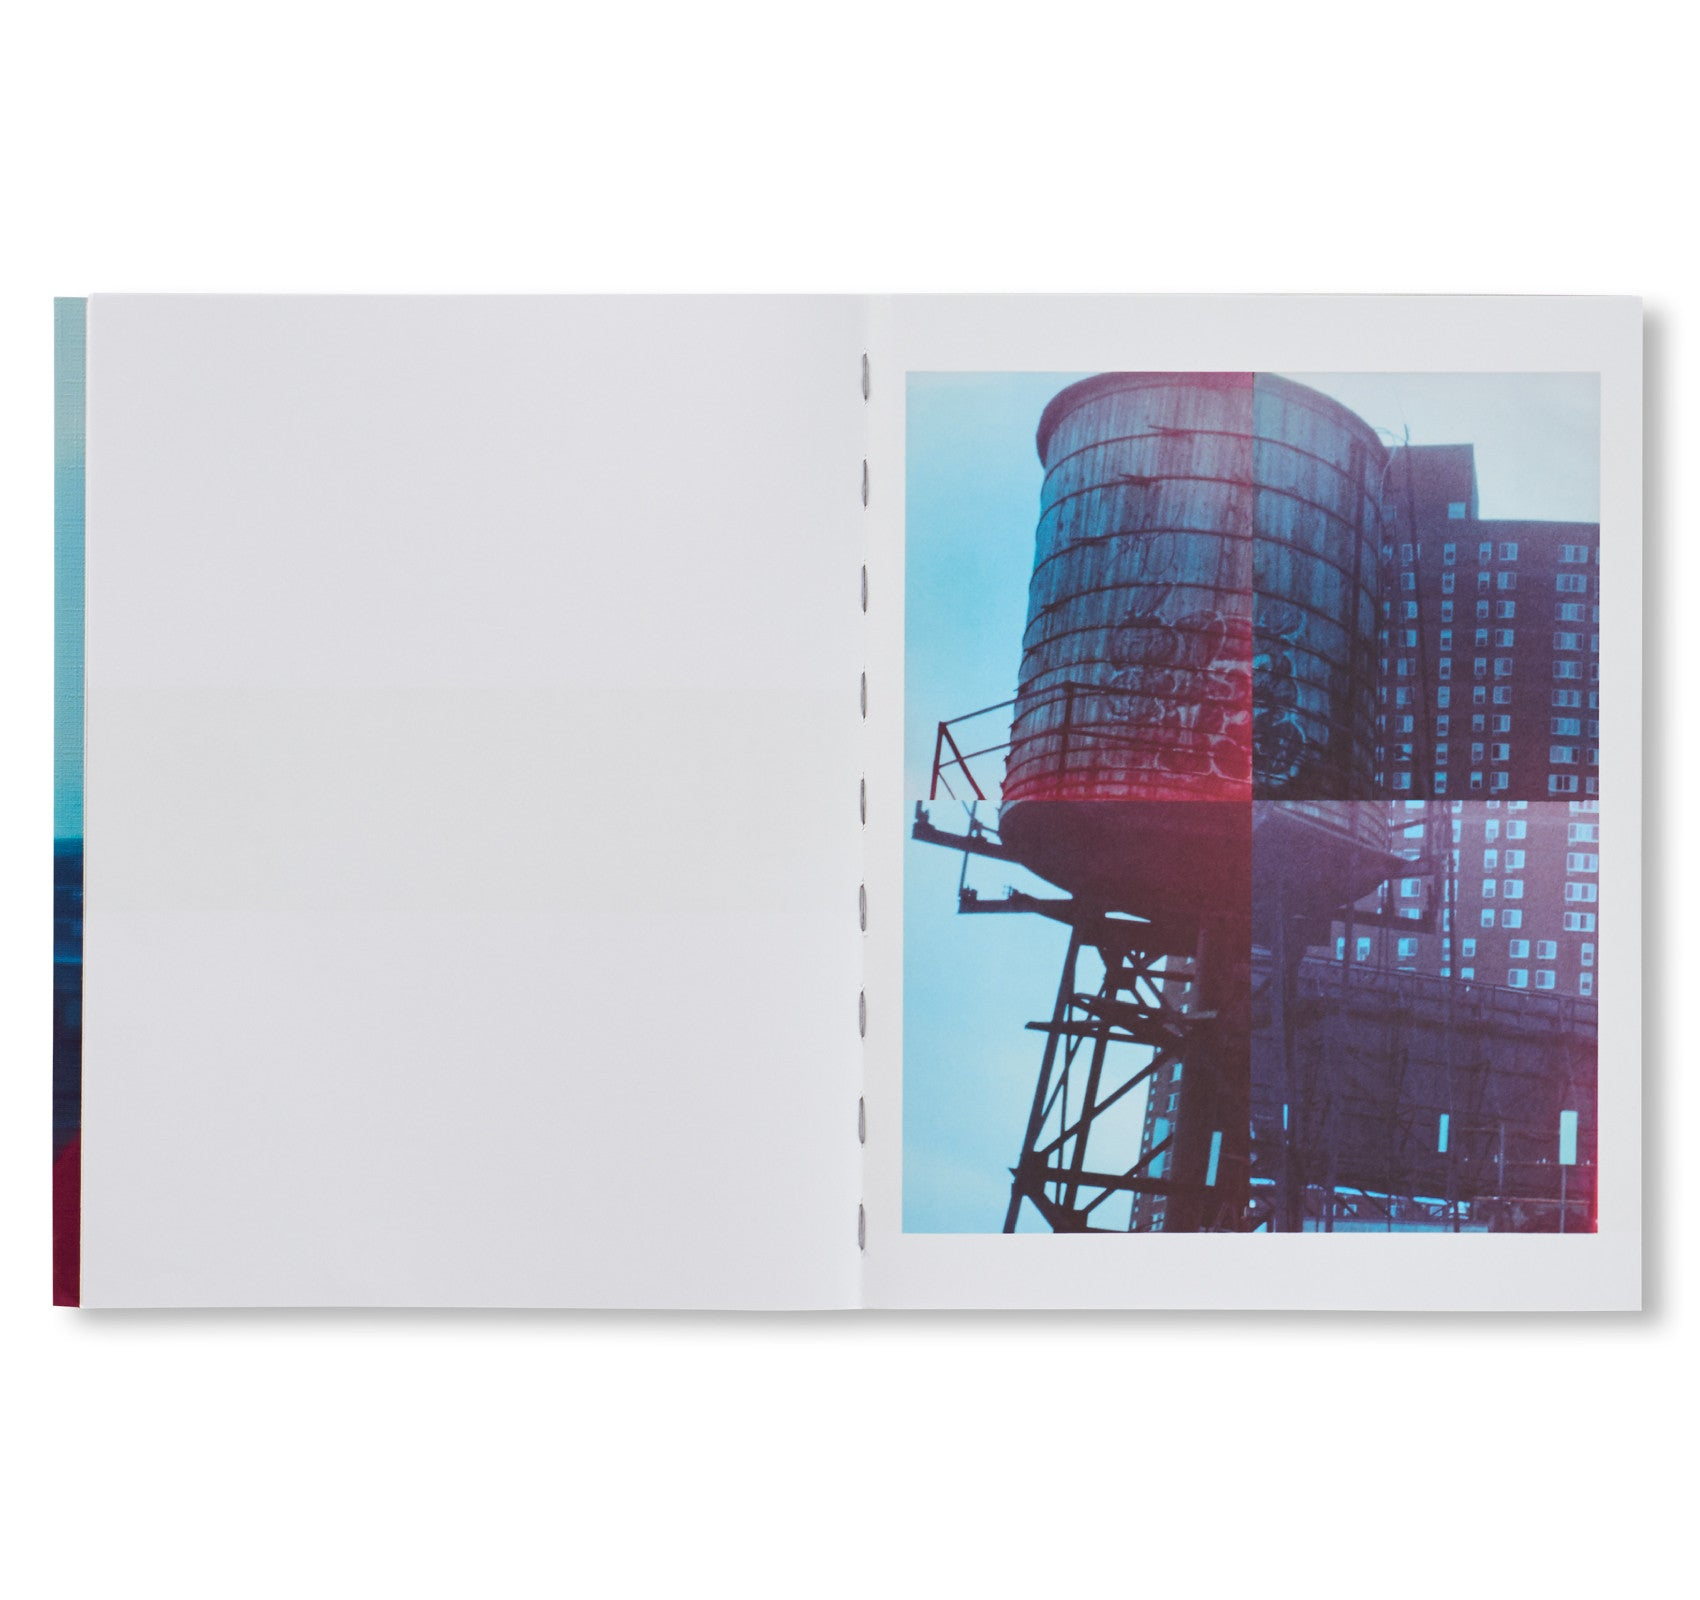 THE NARCISSISTIC CITY by Takashi Homma [SIGNED]